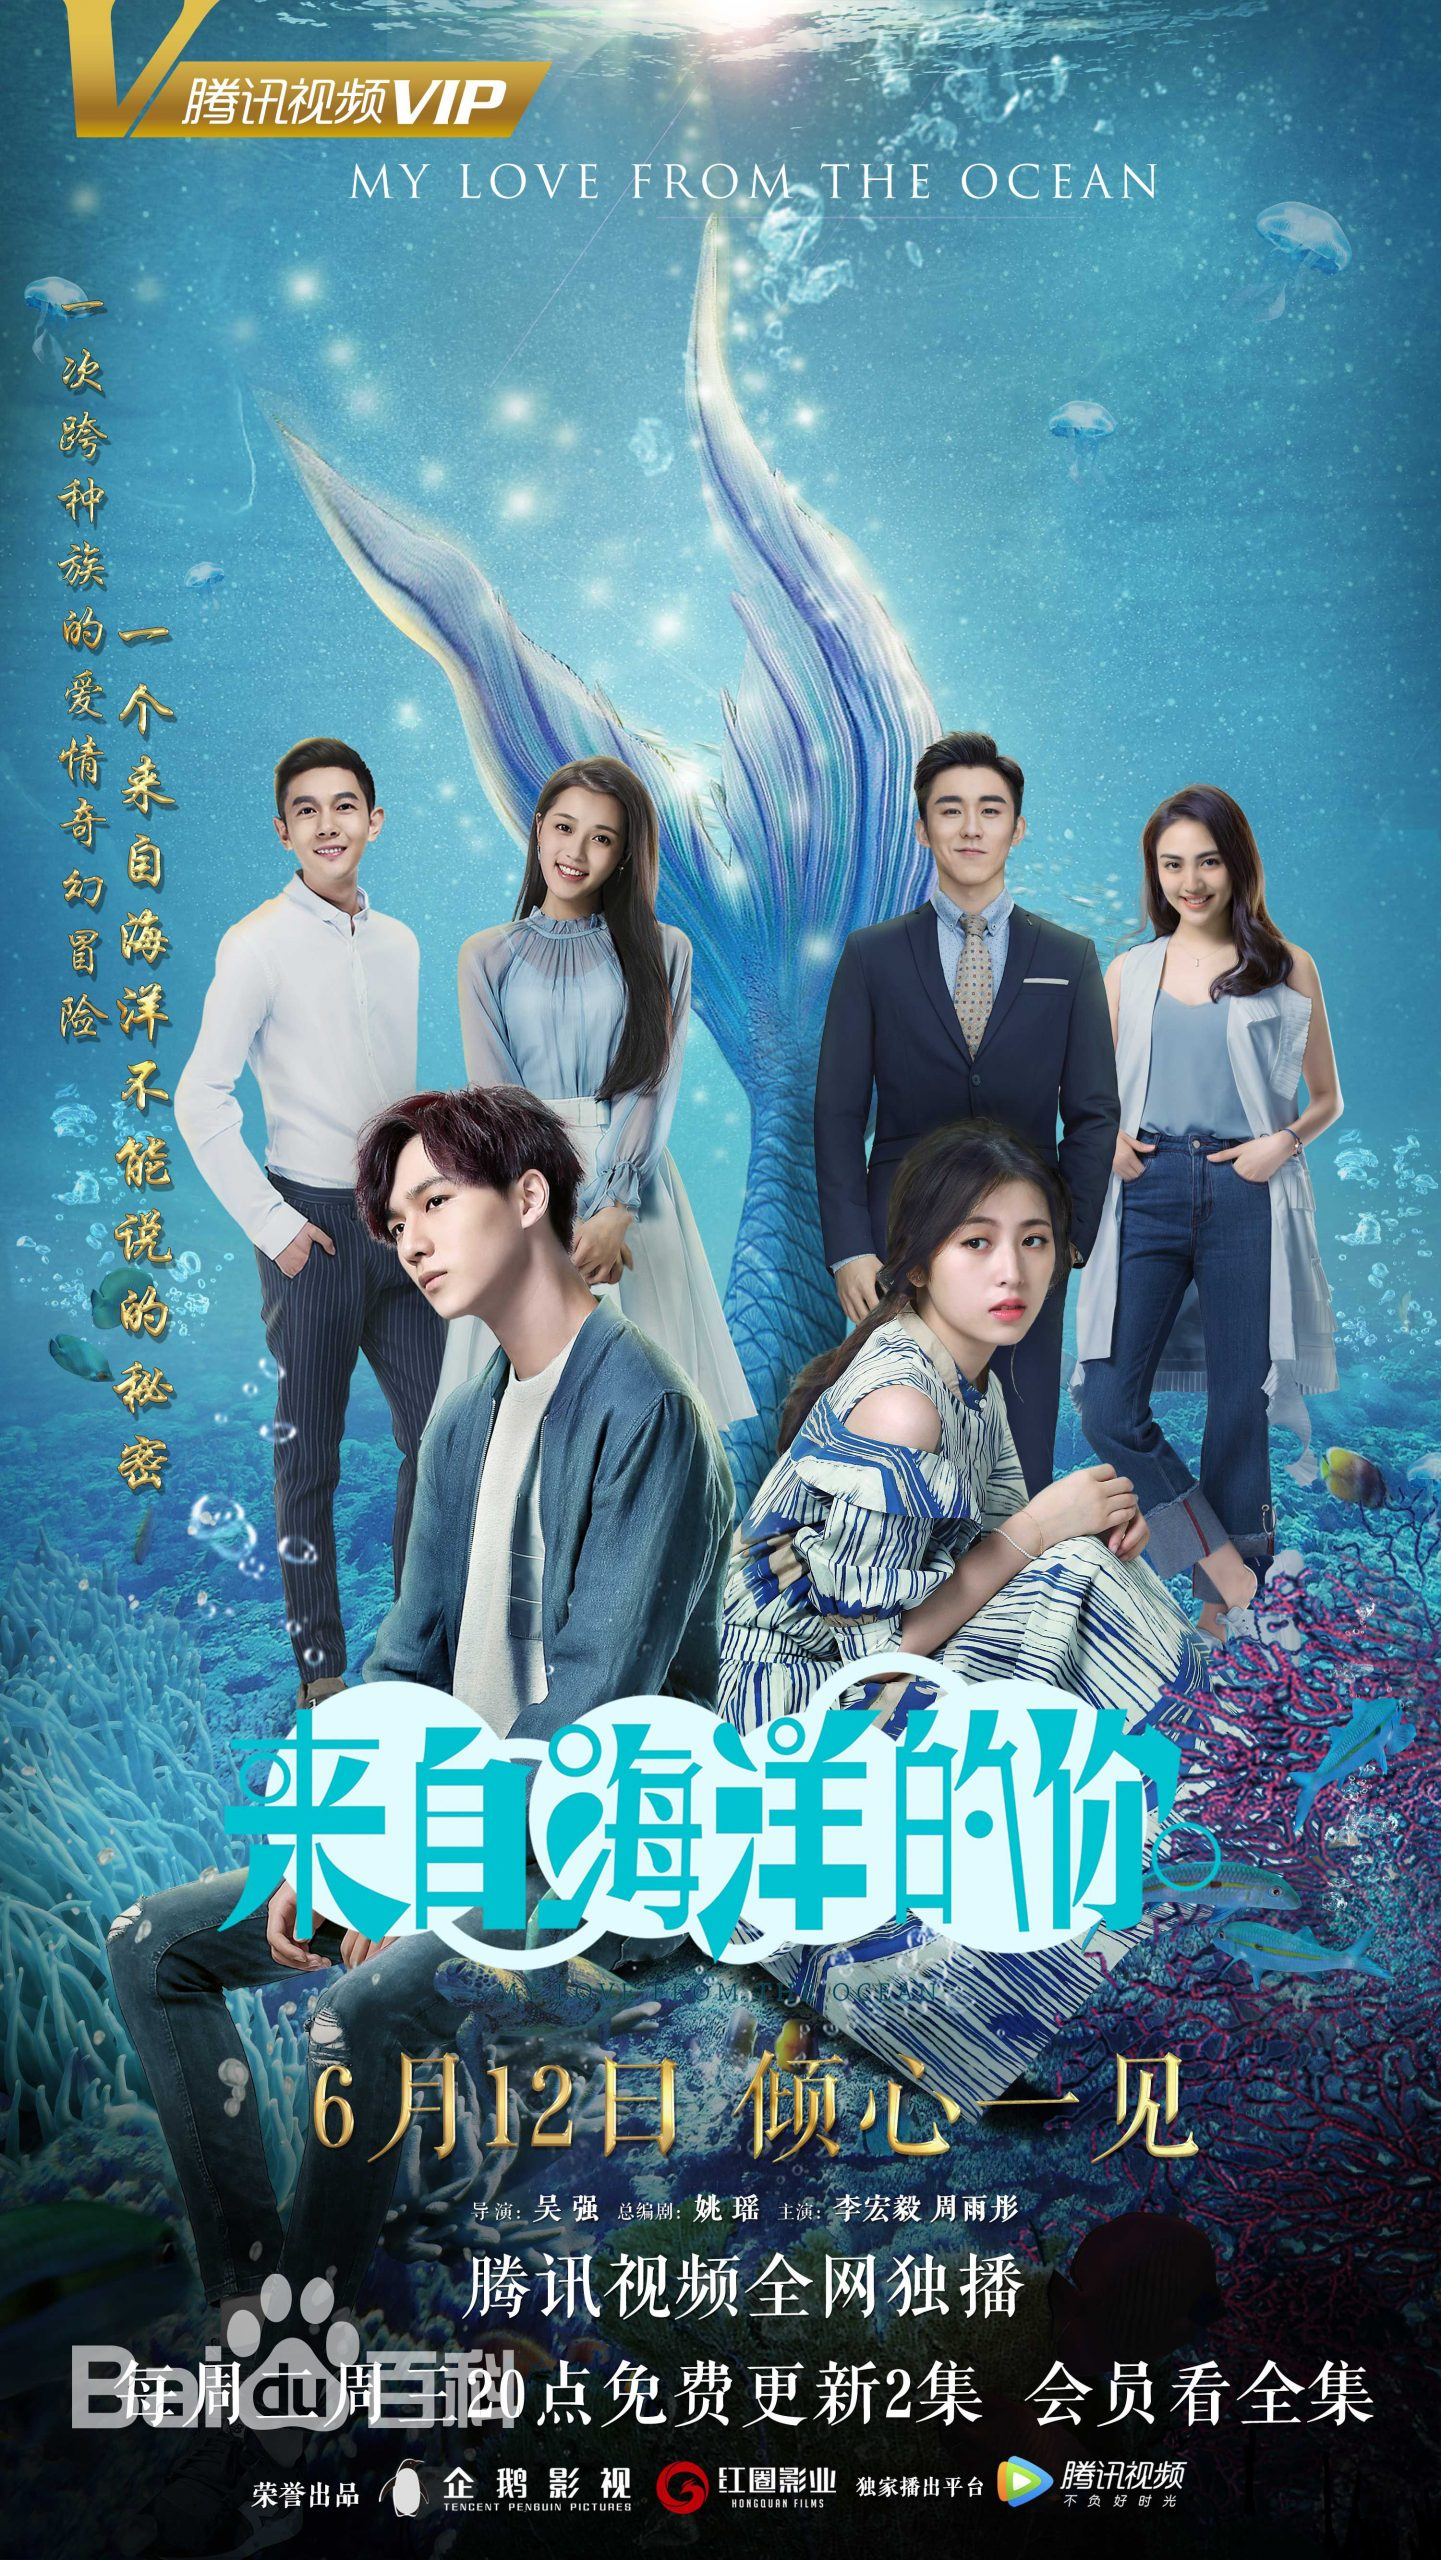 My Love from the Ocean Drama China (2019) : Sinopsis dan Review